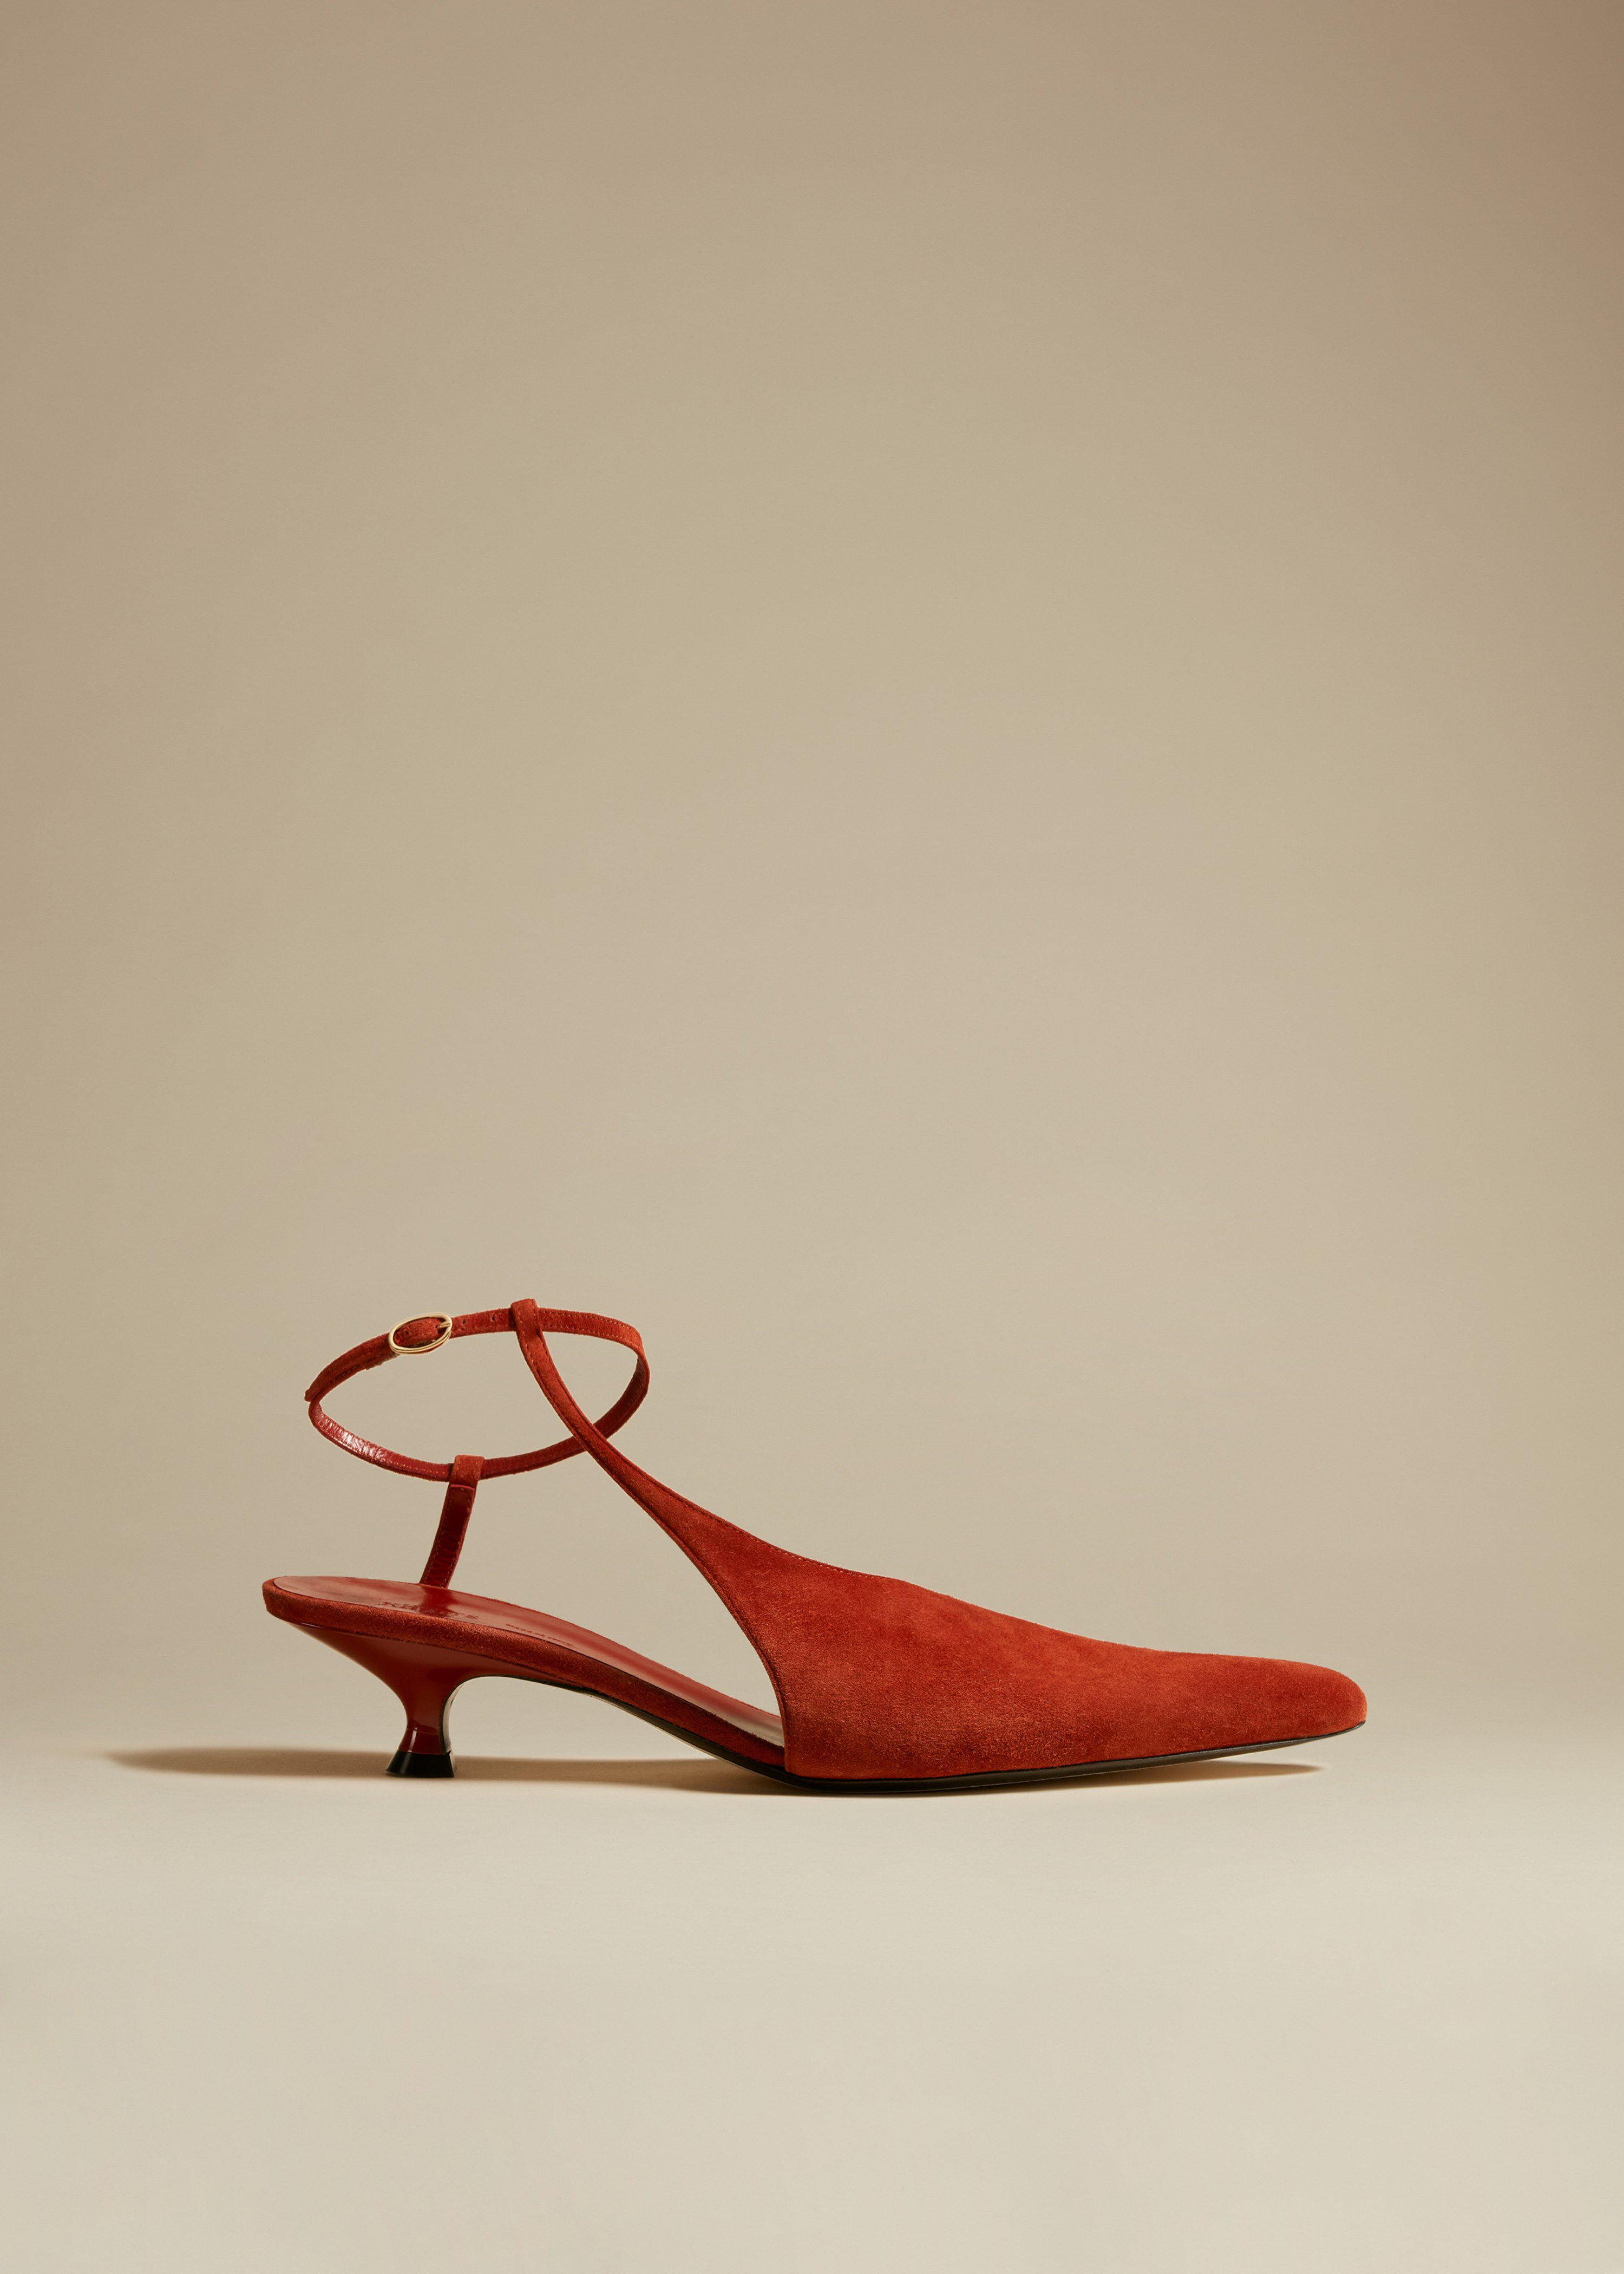 The Seville Pump in Rust Suede